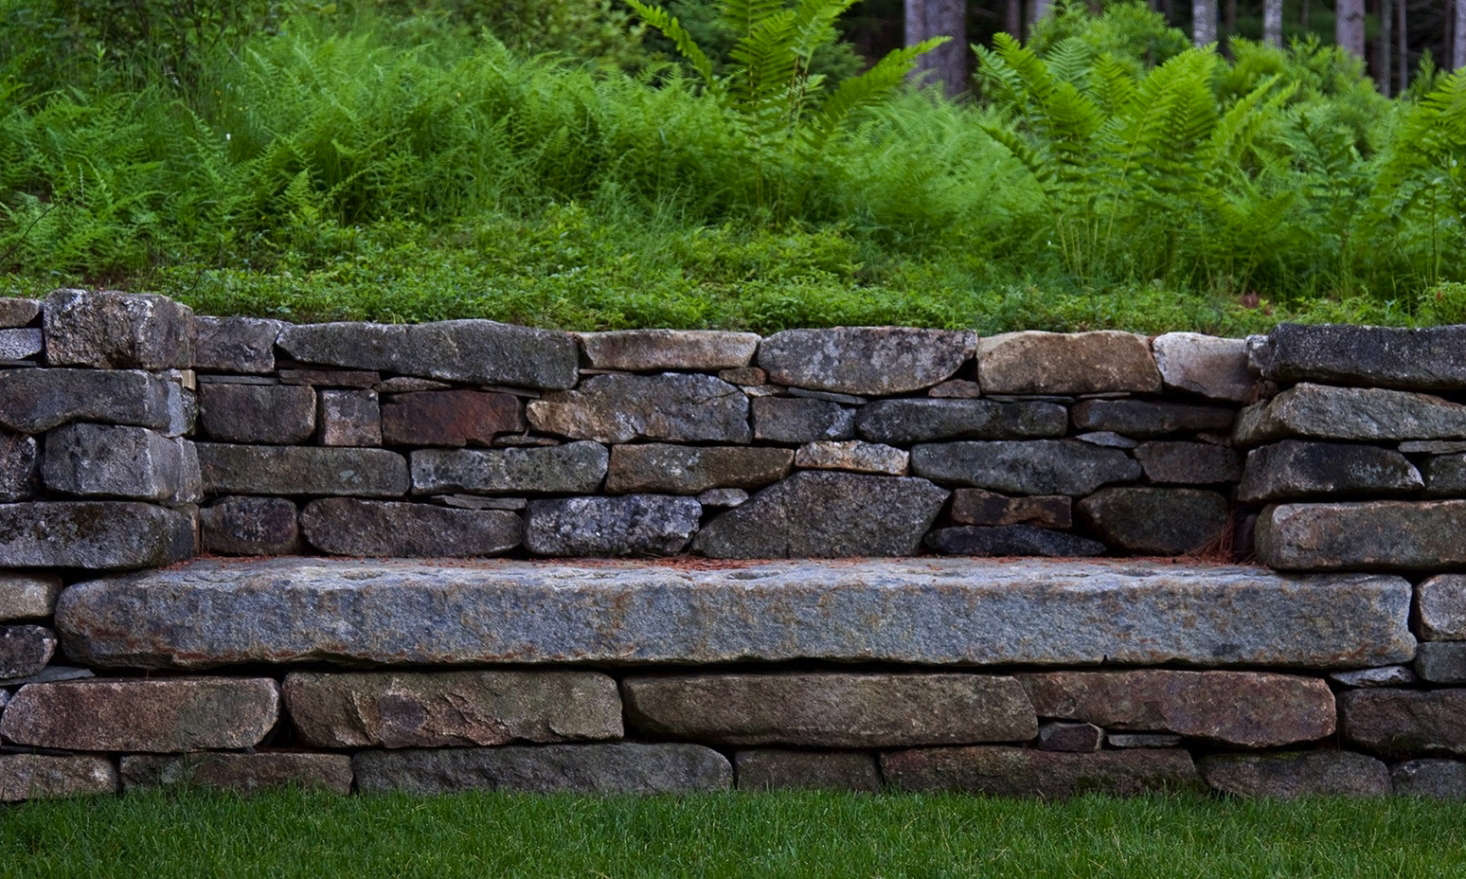 Granite retaining walls direct water flow away from the house and minimize runoff.